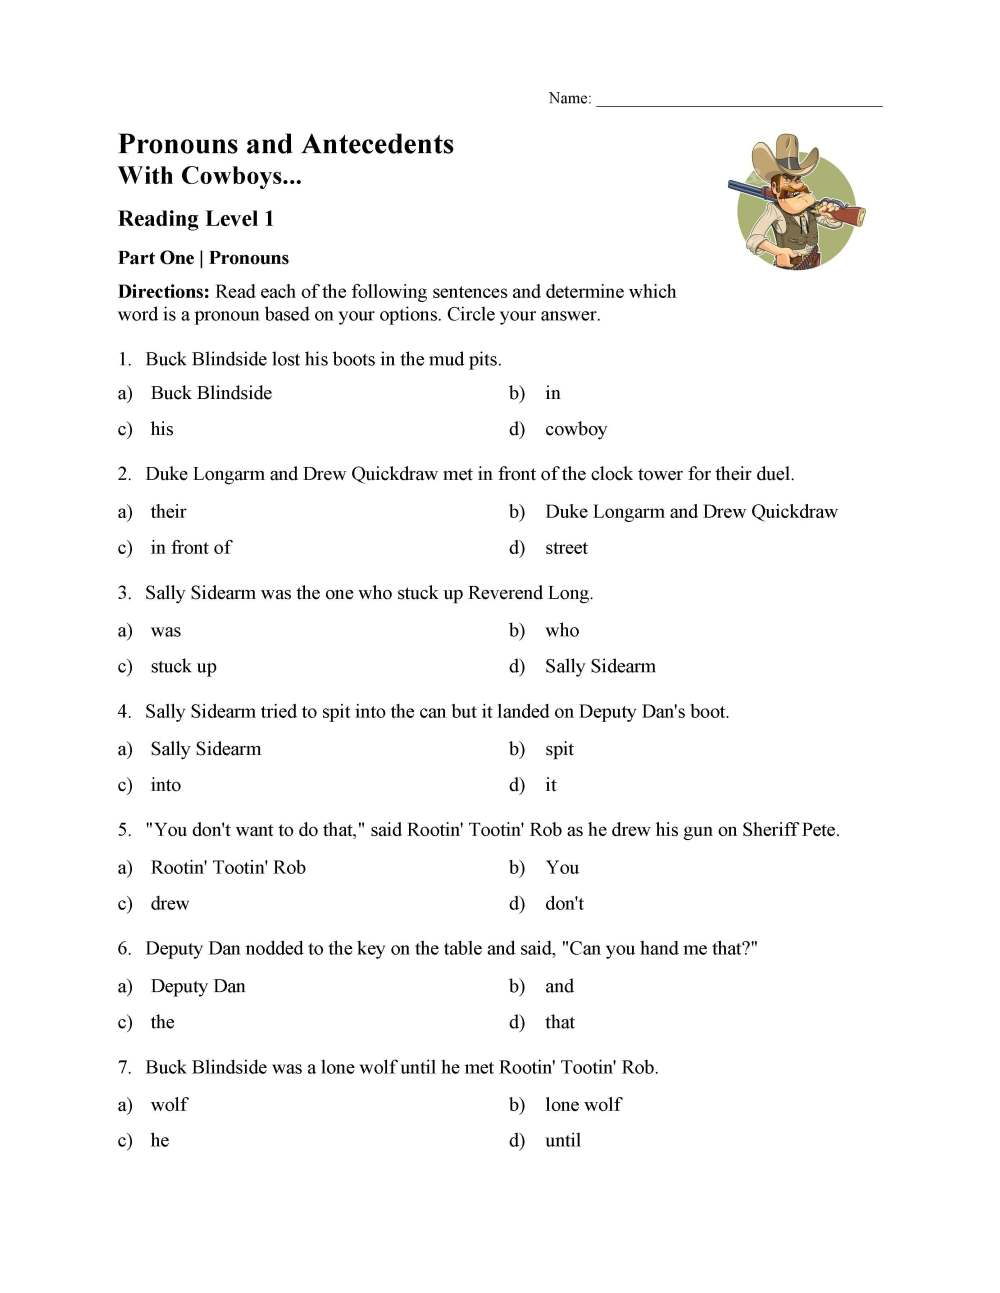 medium resolution of Pronoun and Antecedent Test - With Cowboys   Reading Level 1   Preview